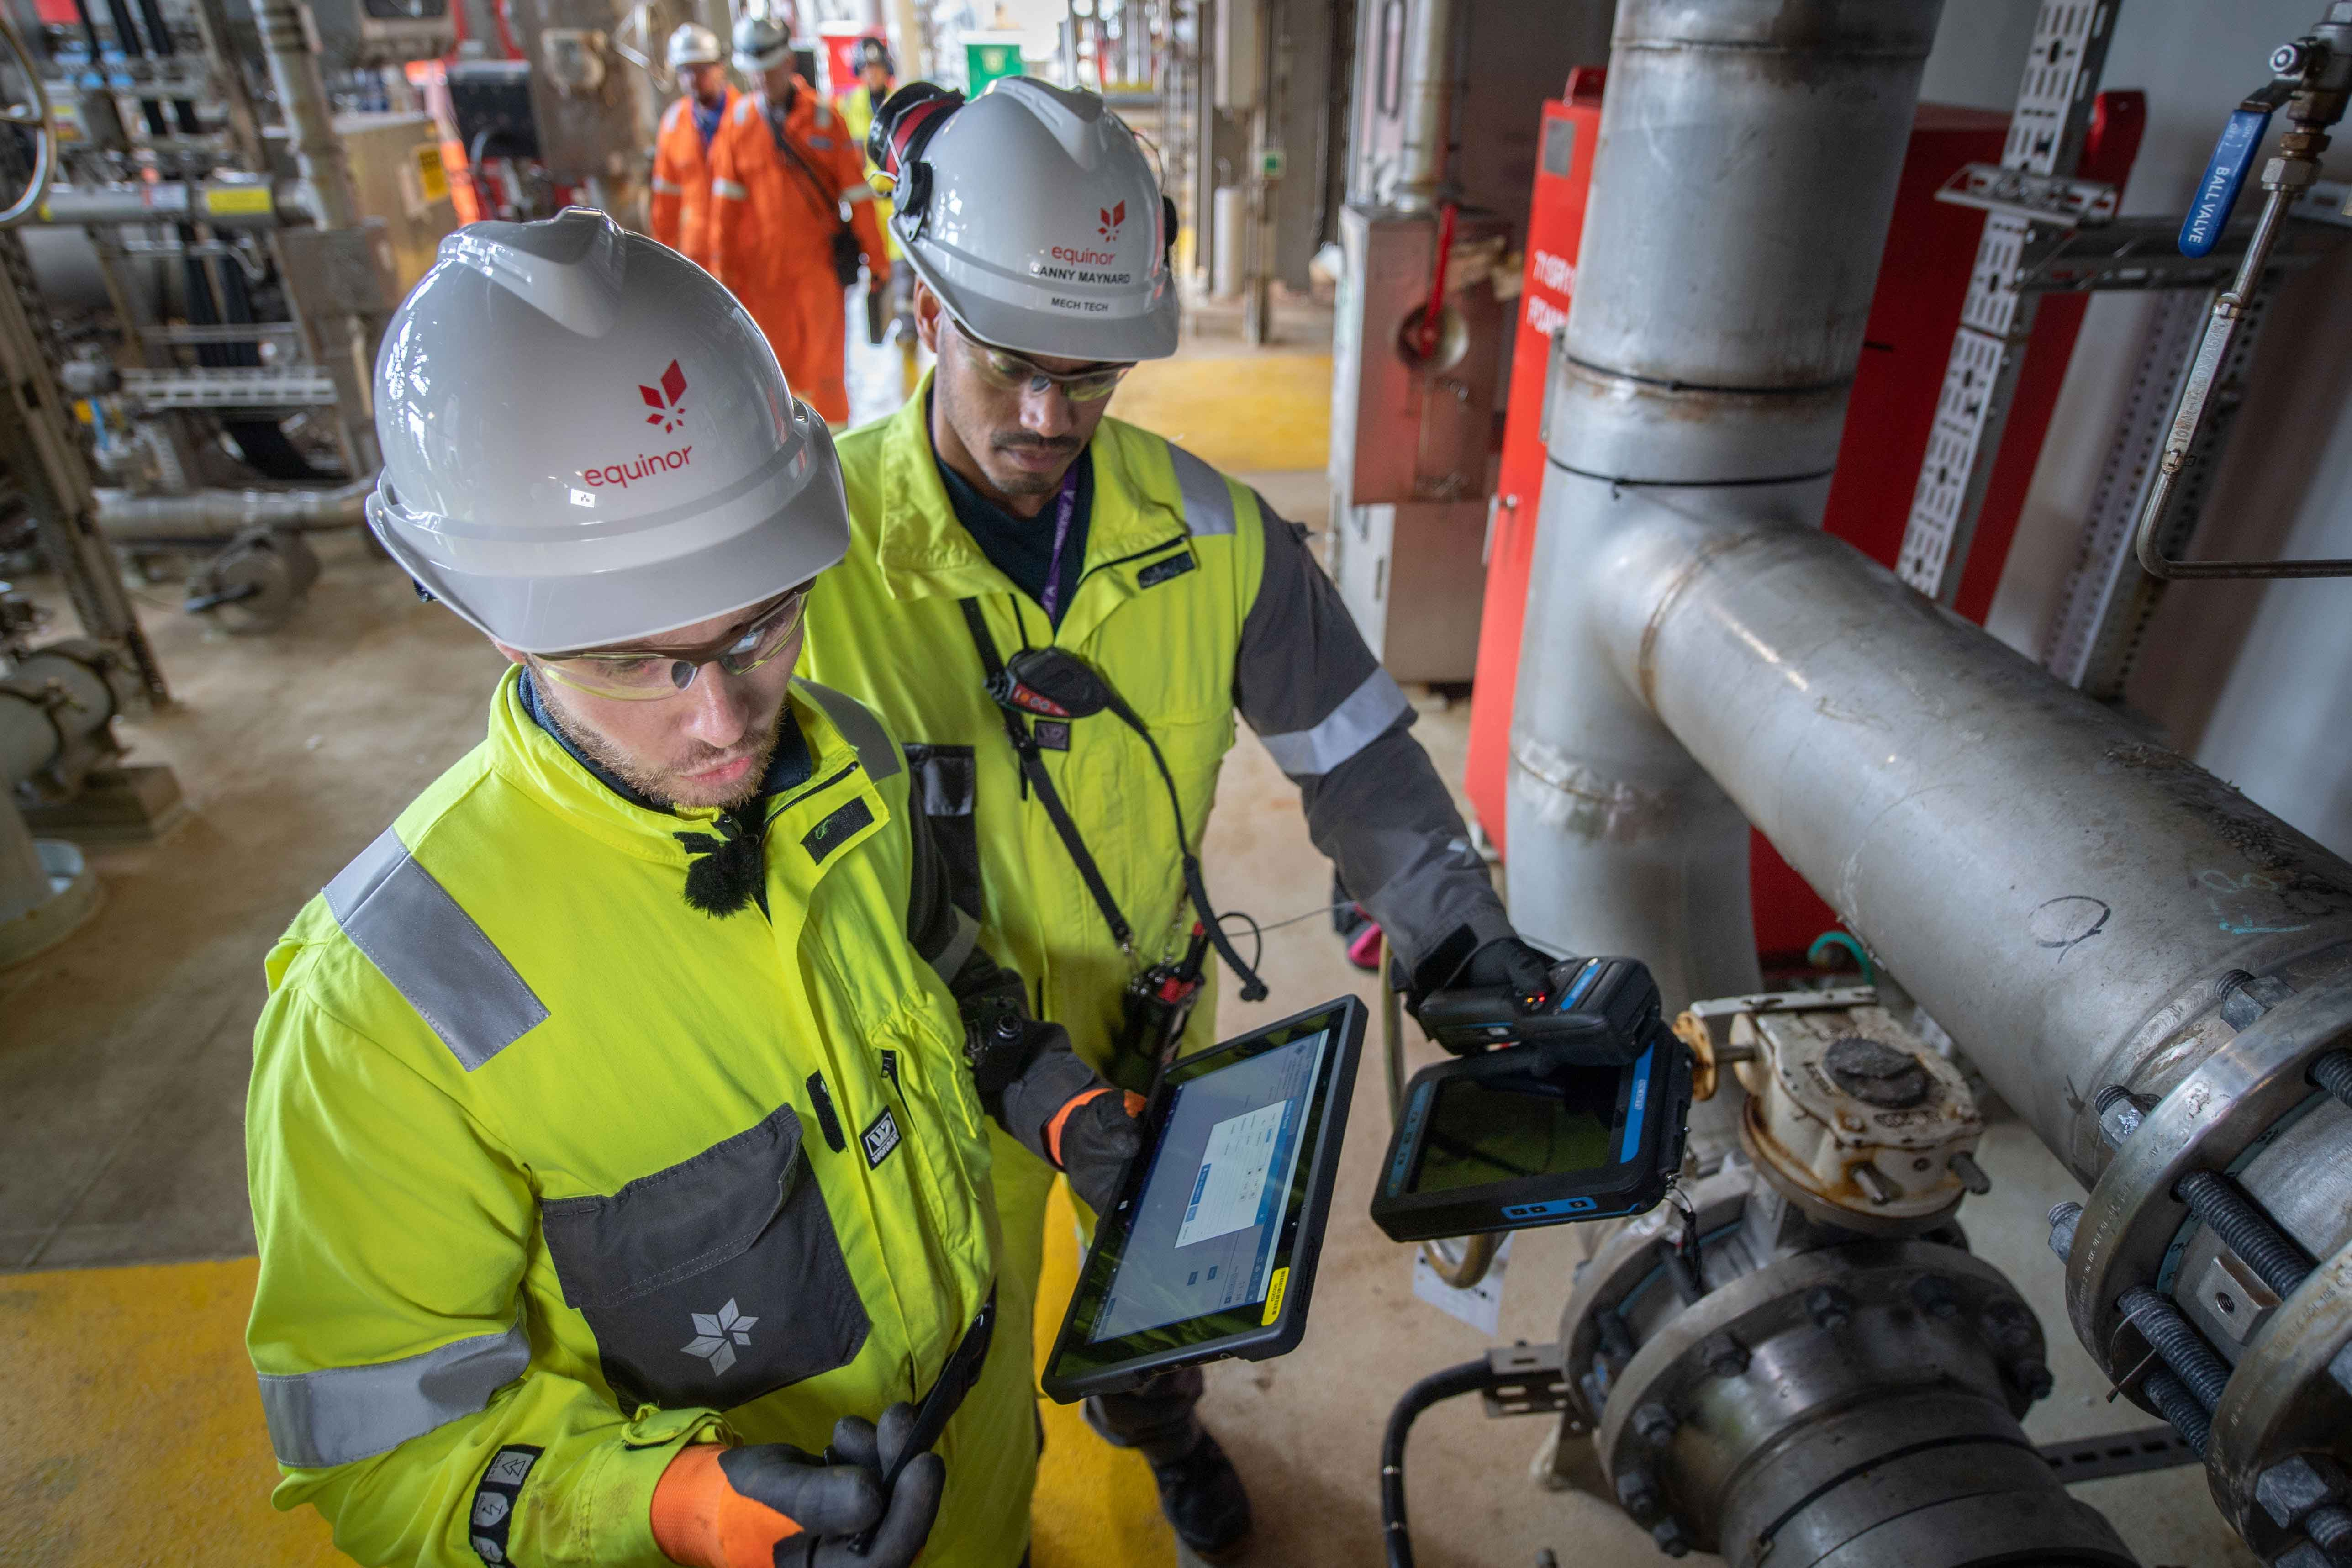 Equinor's engineers start digital transformation with